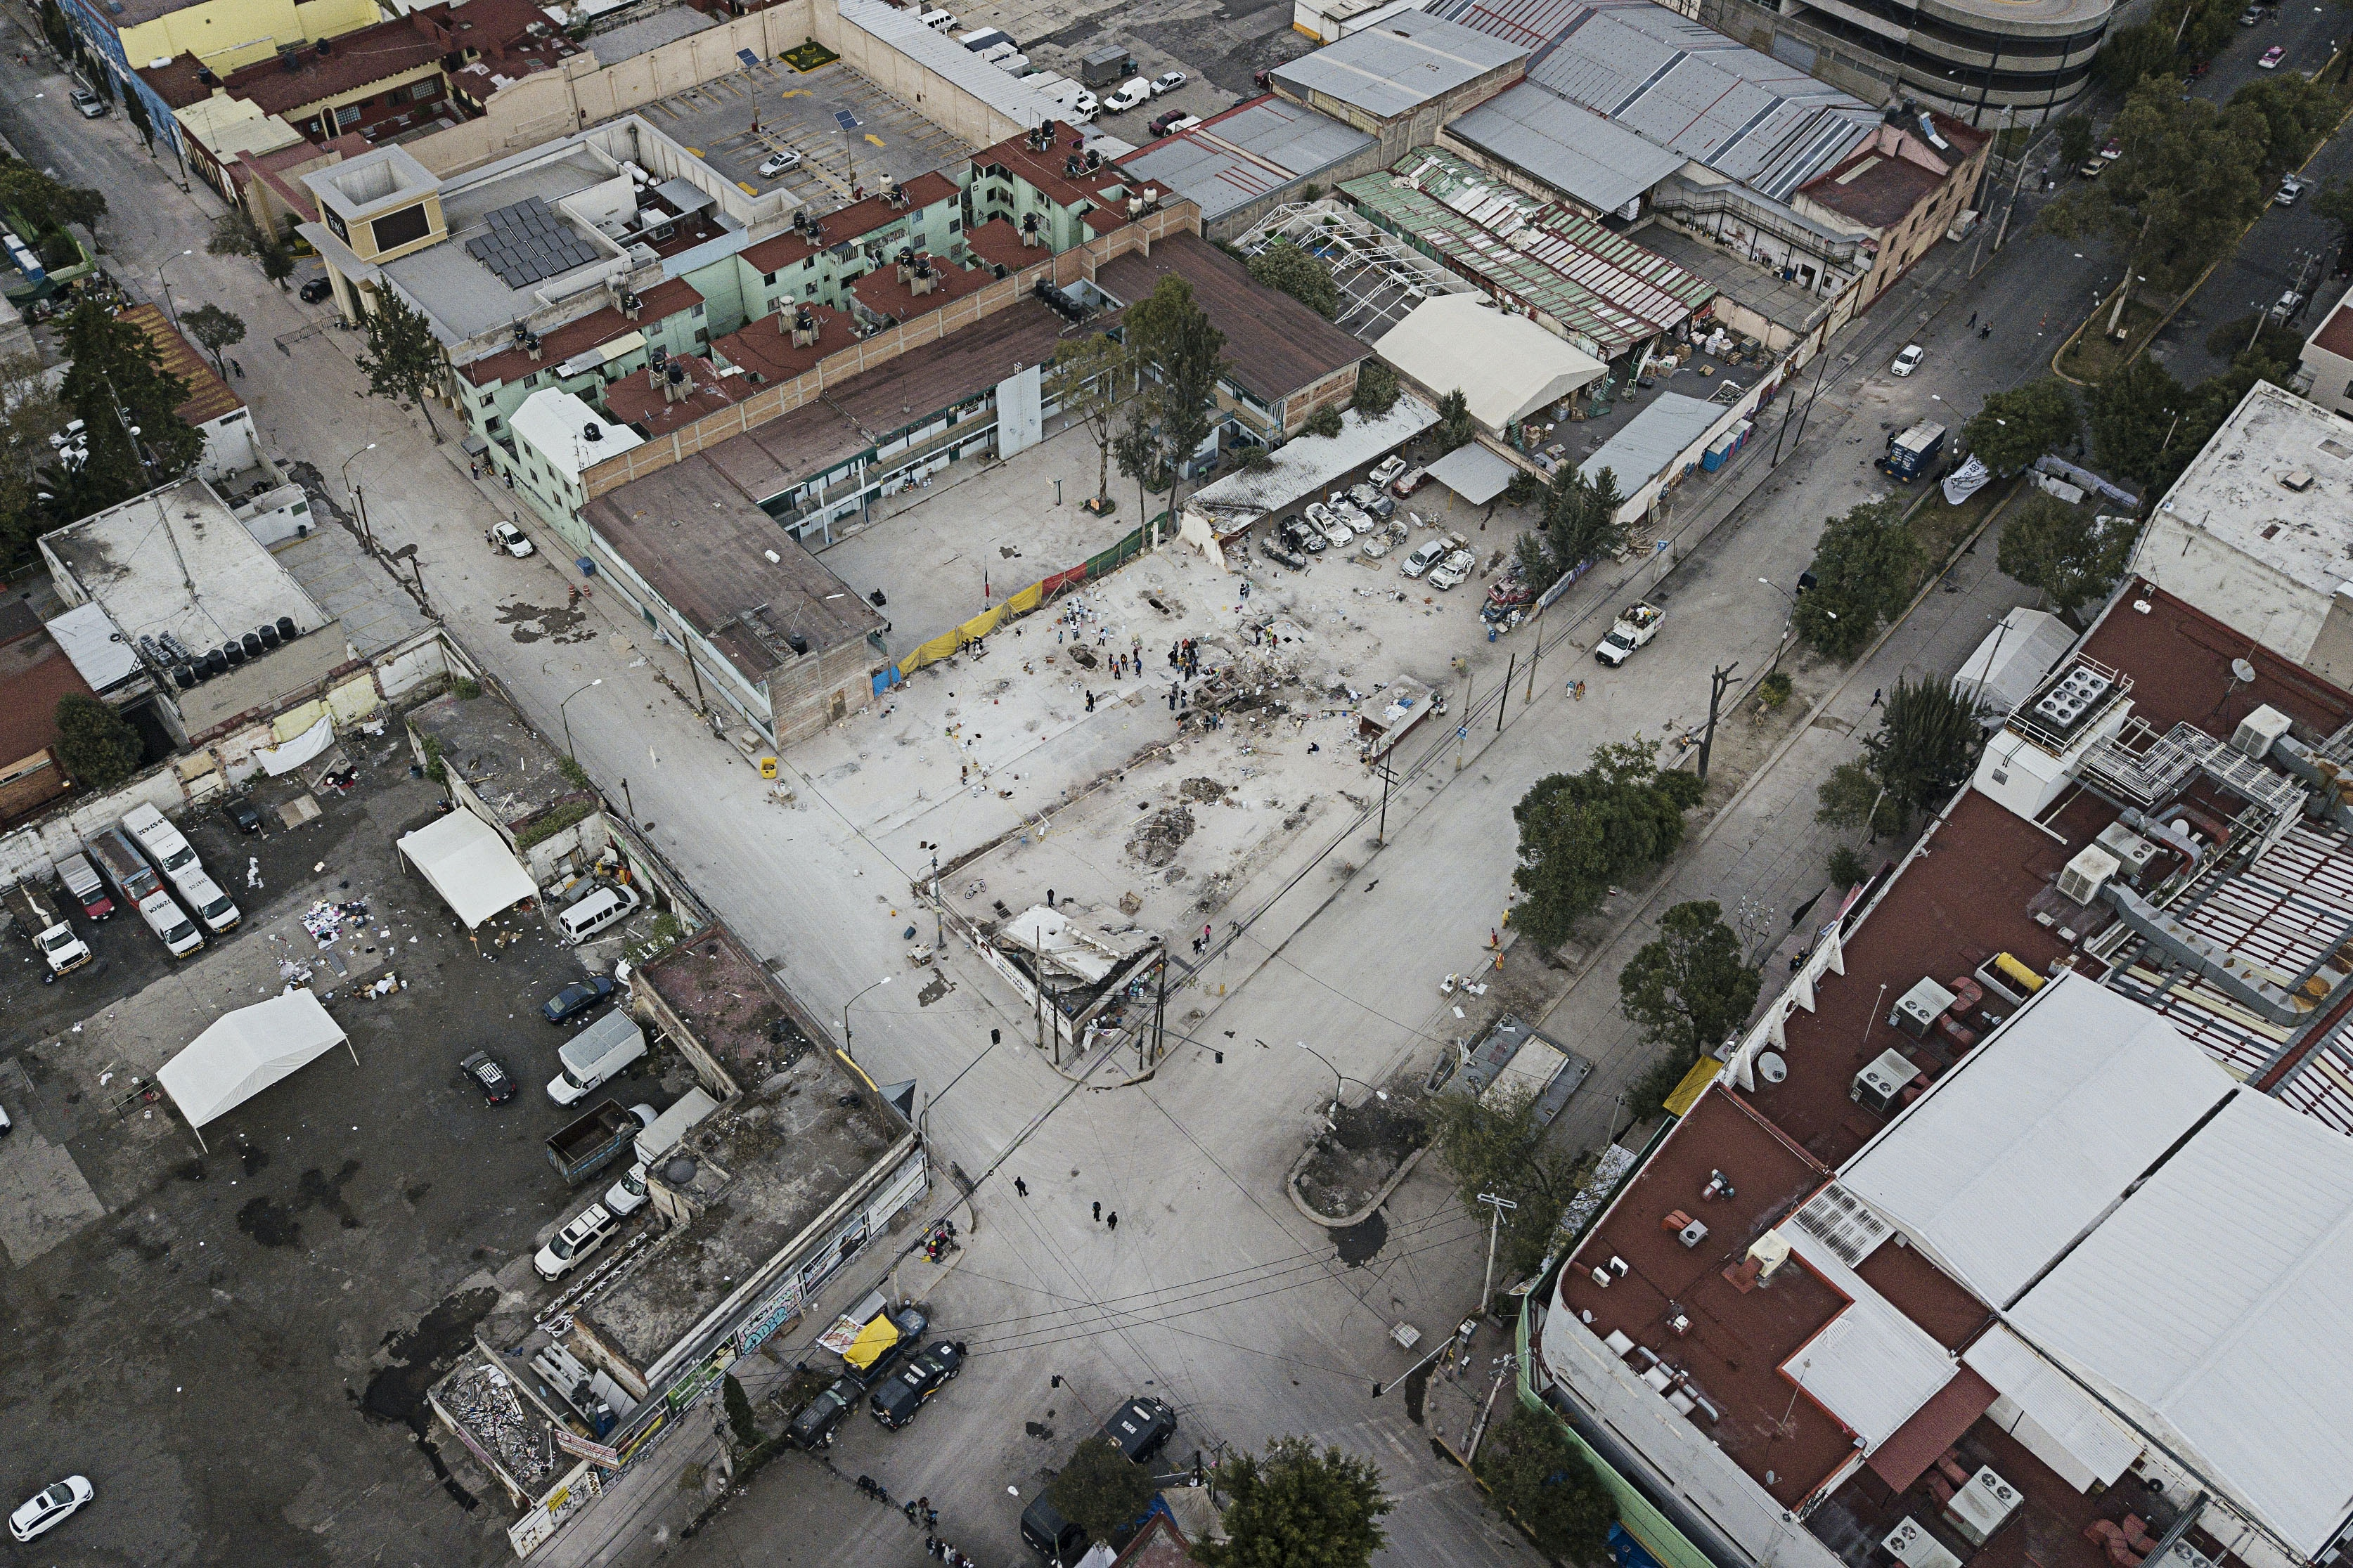 The quake-collapsed textile factory building leaves an empty space at the corner of Bolivar and Chimalpopoca streets after the rubble was cleared away in the Obrera neighborhood of Mexico City, Saturday, Sept. 23, 2017. As rescue operations stretched into day 5, residents throughout the capital have held out hope that dozens still missing might be found alive. (AP Photo/Miguel Tovar)